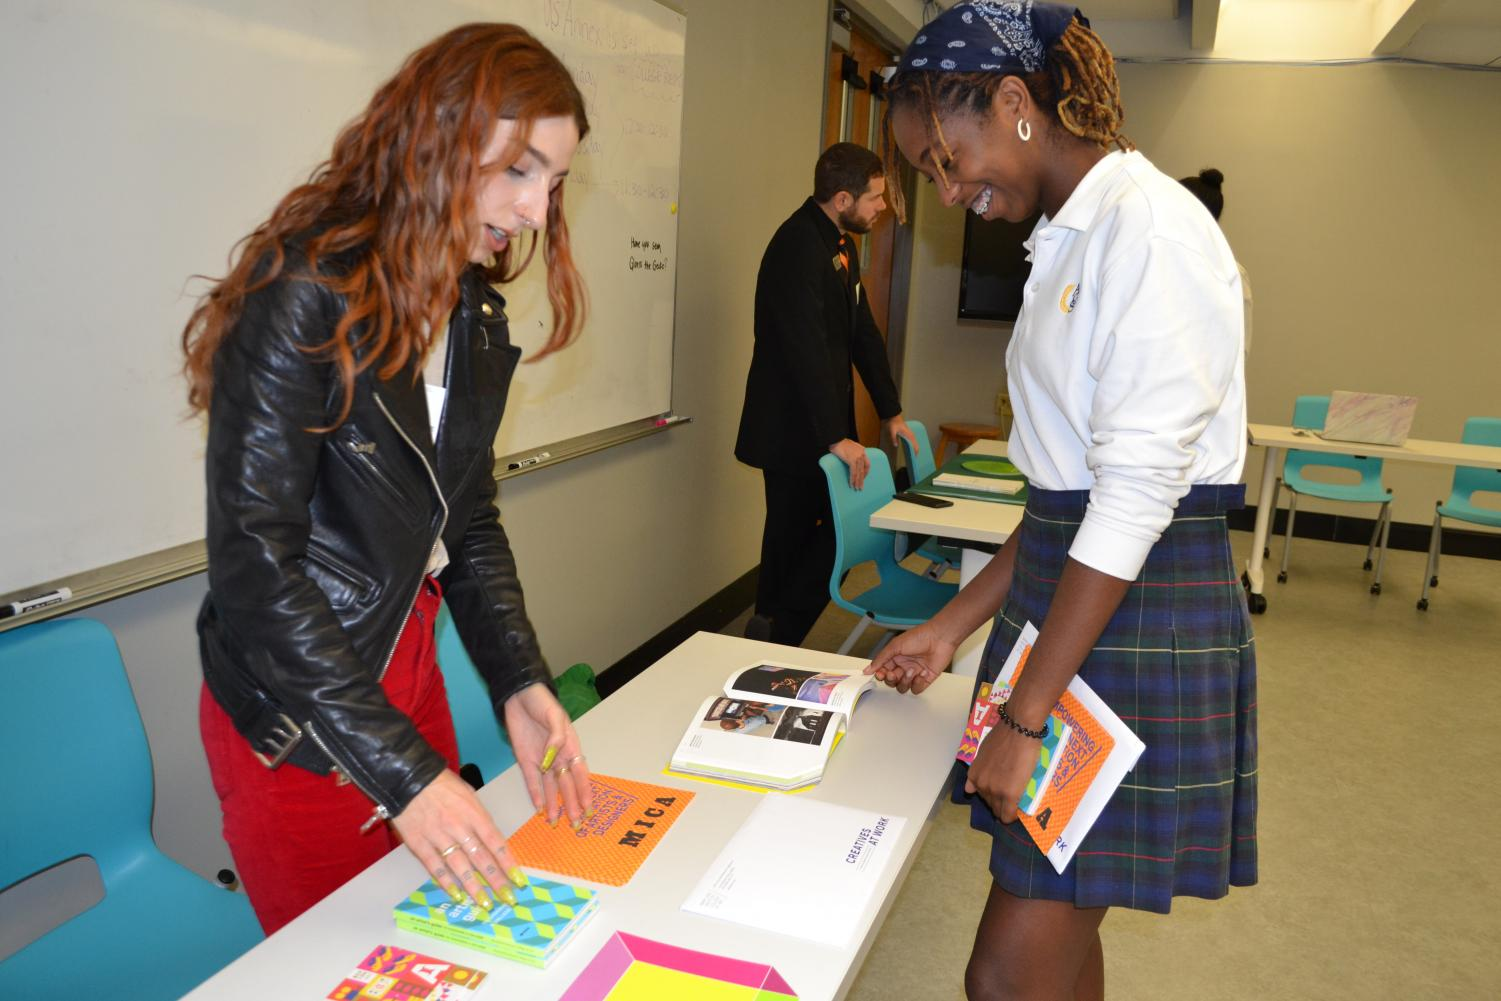 Zora Cokes '22, talks to a representative from Maryland Institute College of Art